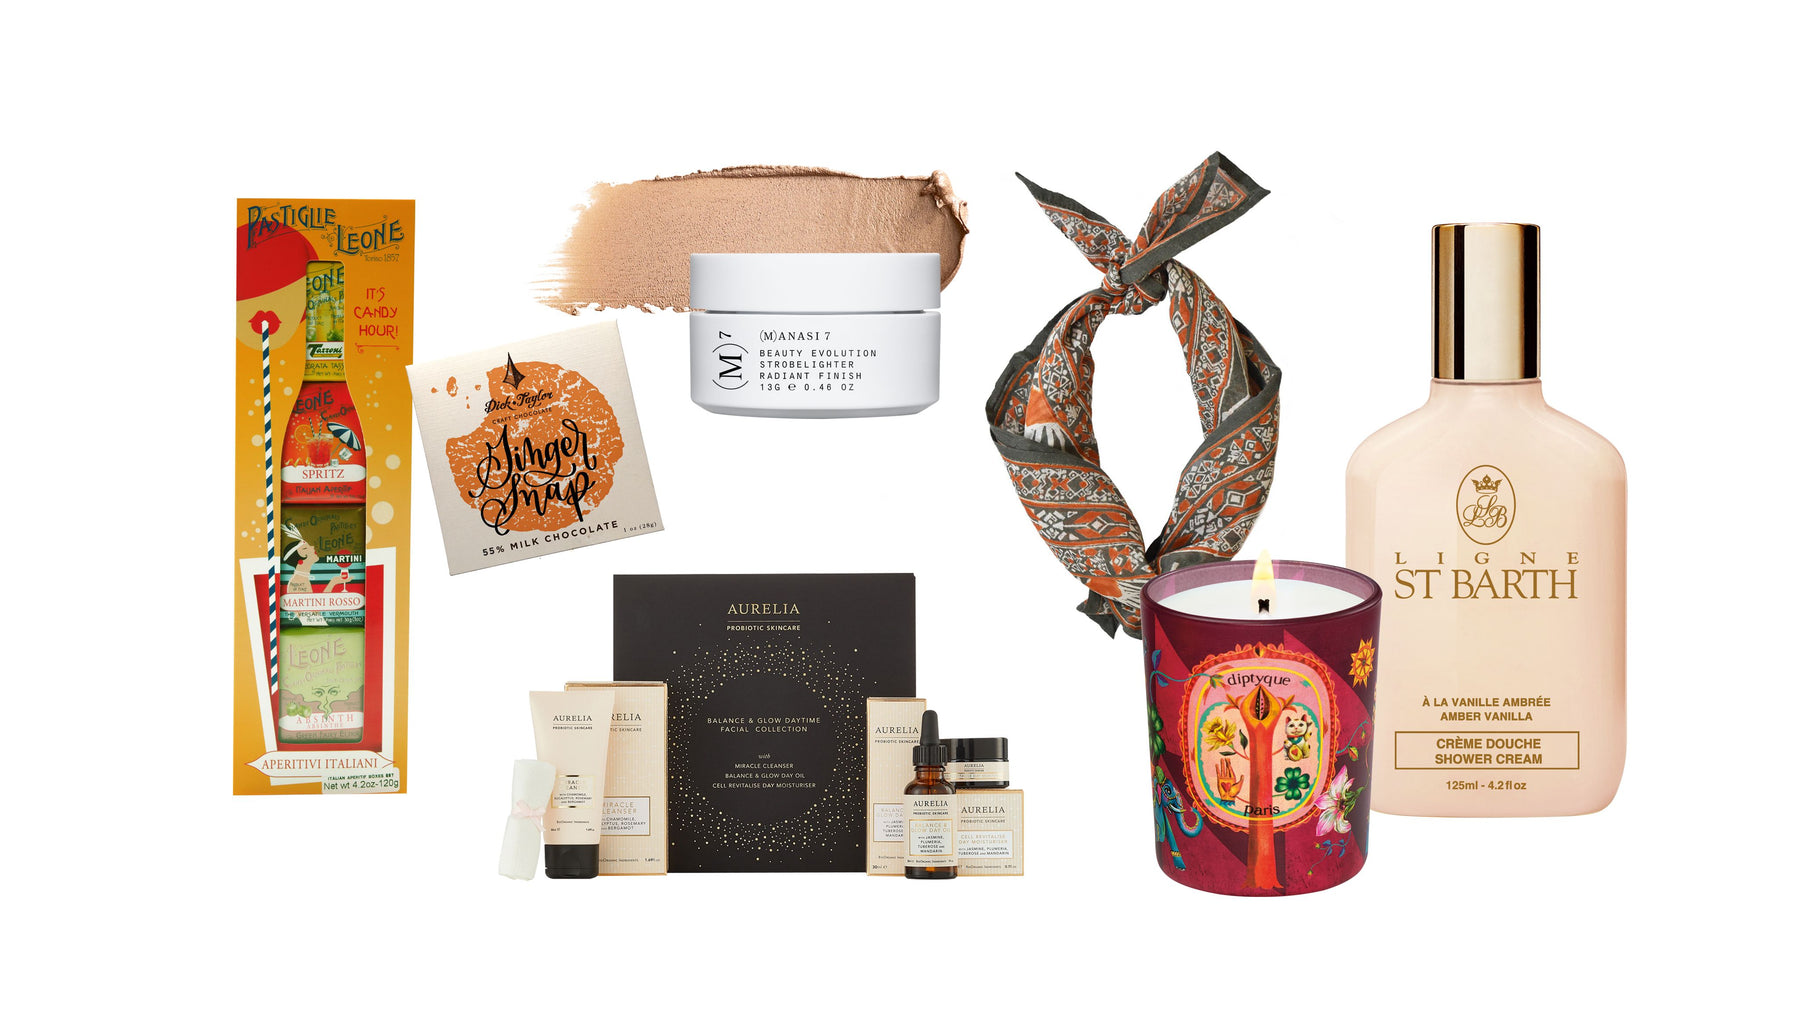 Gifts and Gift Sets from Leone, Dick Taylor Craft Chocolate, (M)anasi 7, From Mila, Ligne St. Barth, Aurelia Skincare and Diptyque Paris